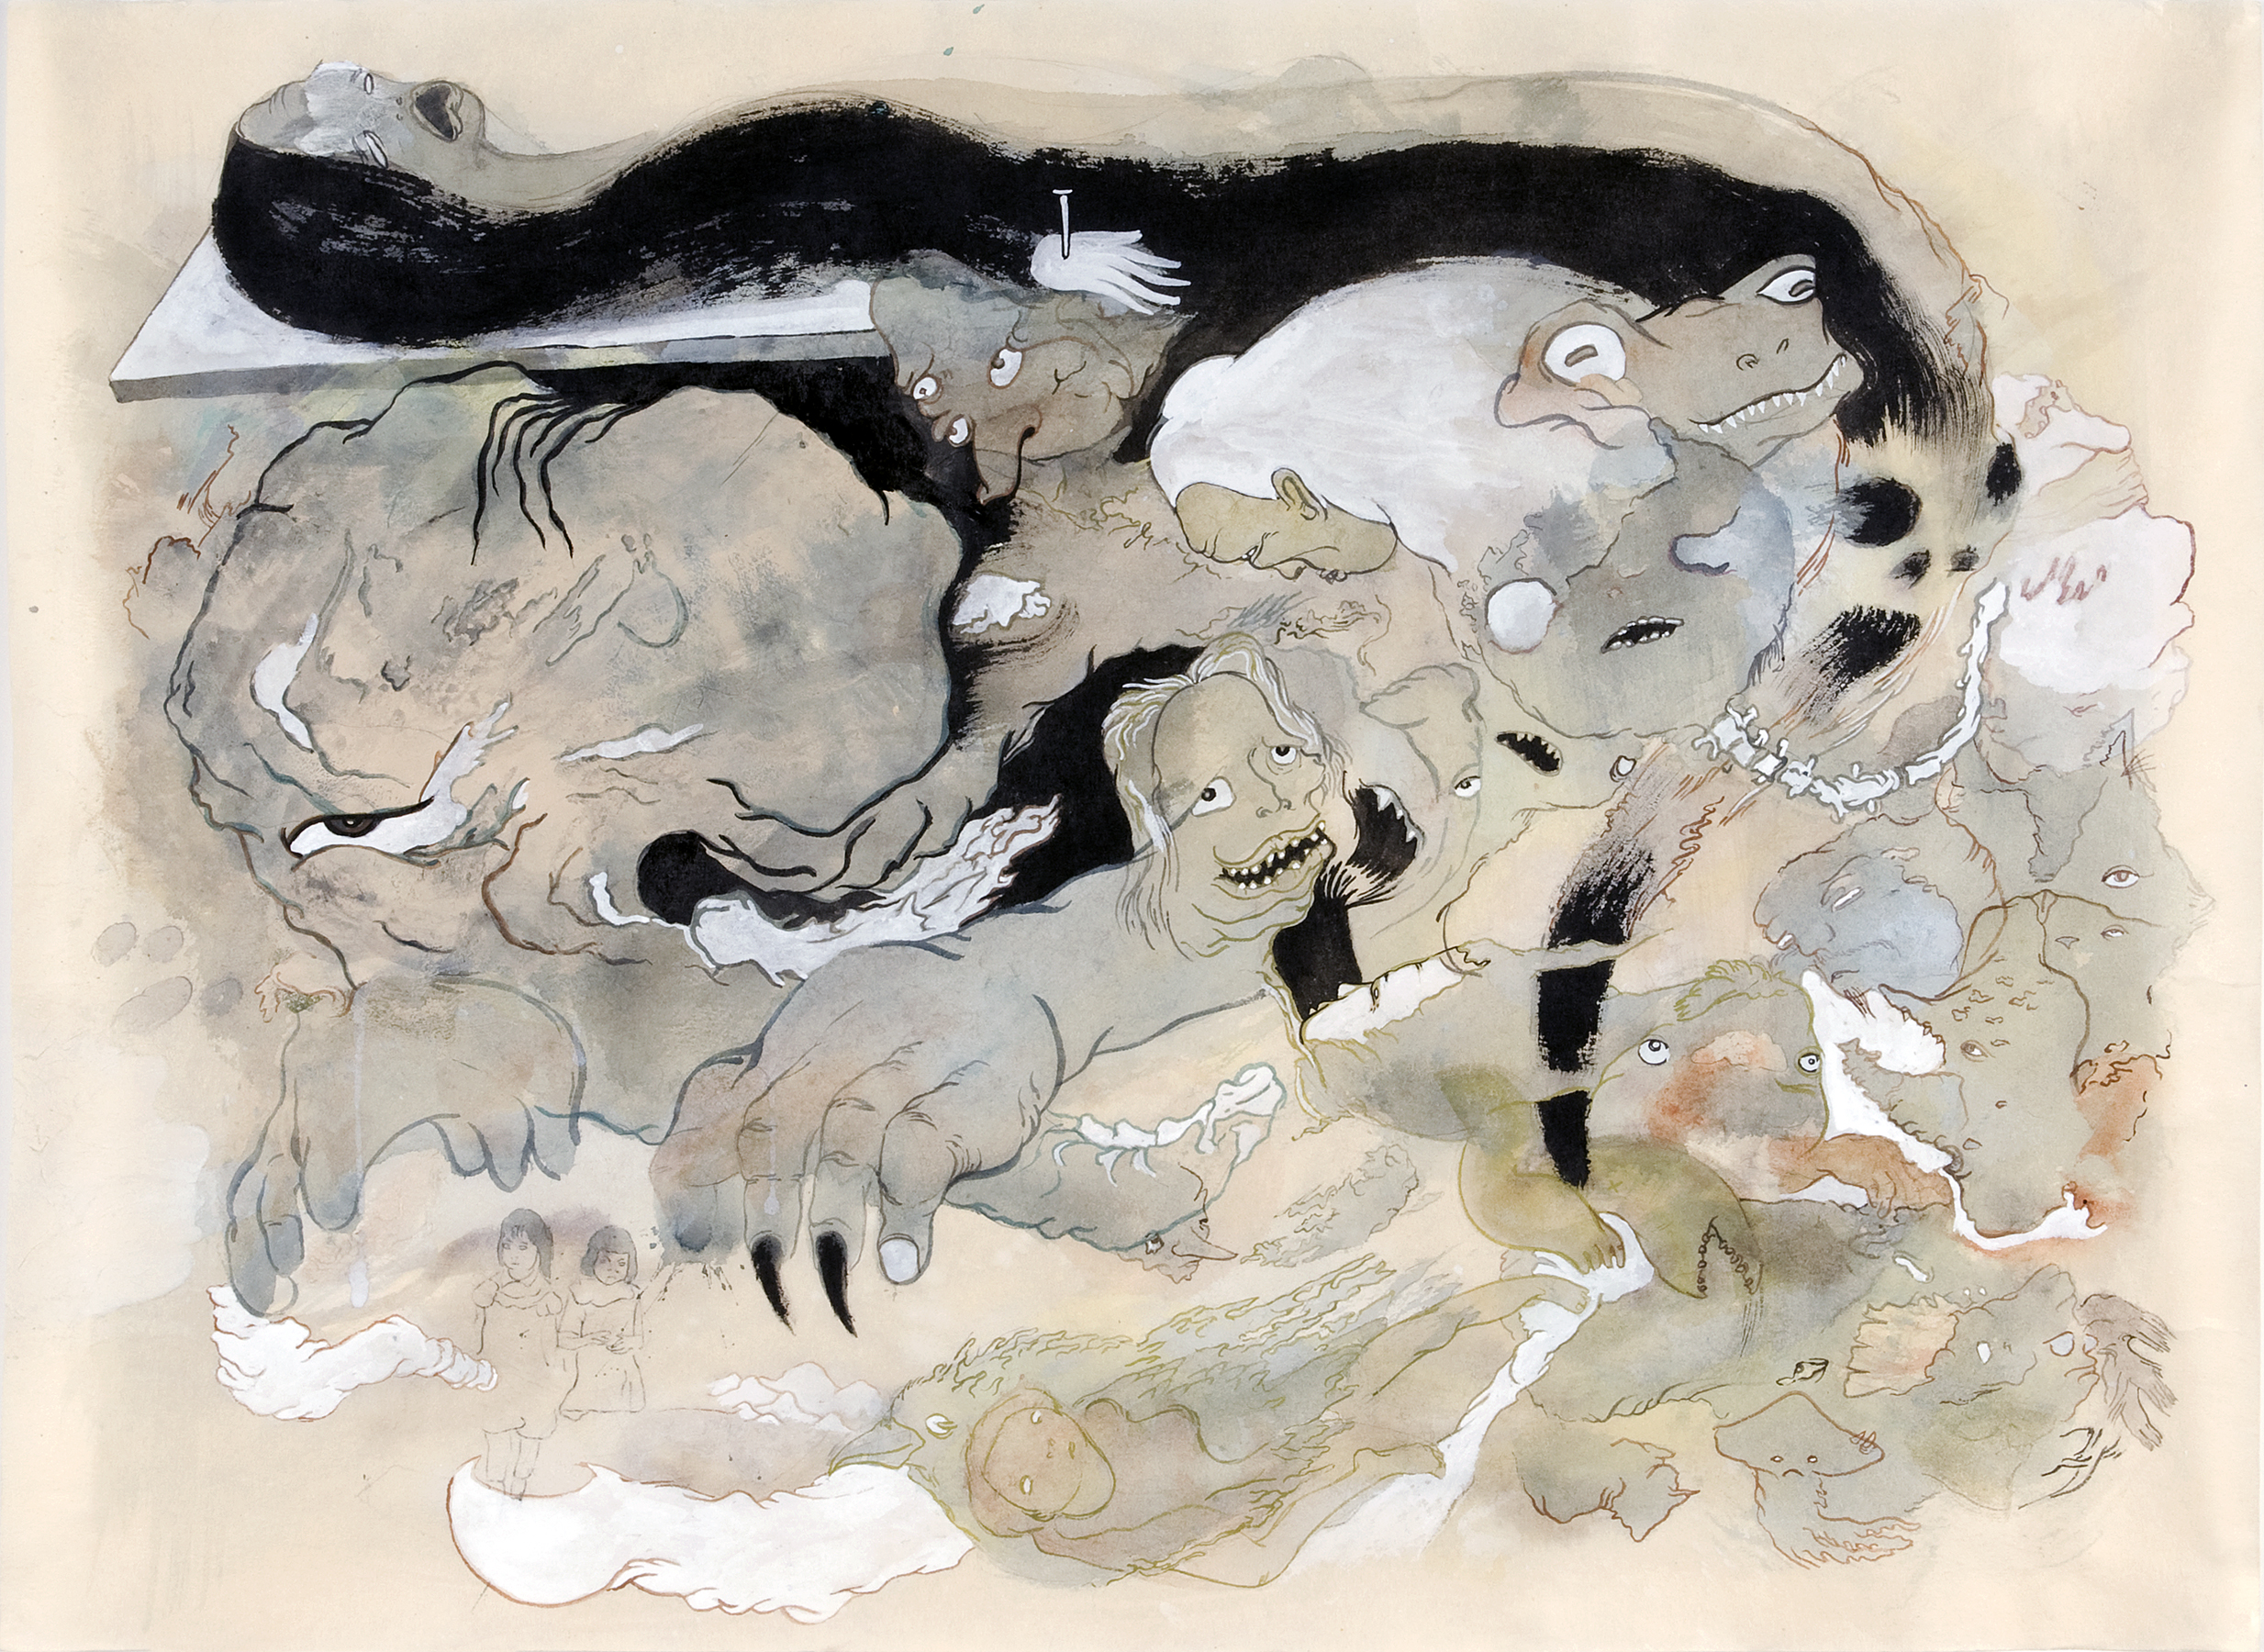 """Howie Tsui 徐浩恩, Cumulus Dark 黑云, 2008, 18.5"""" x 25"""", ink and paint pigments on mulberry paper 桑皮纸、颜料与墨, 47 x 65 cm"""